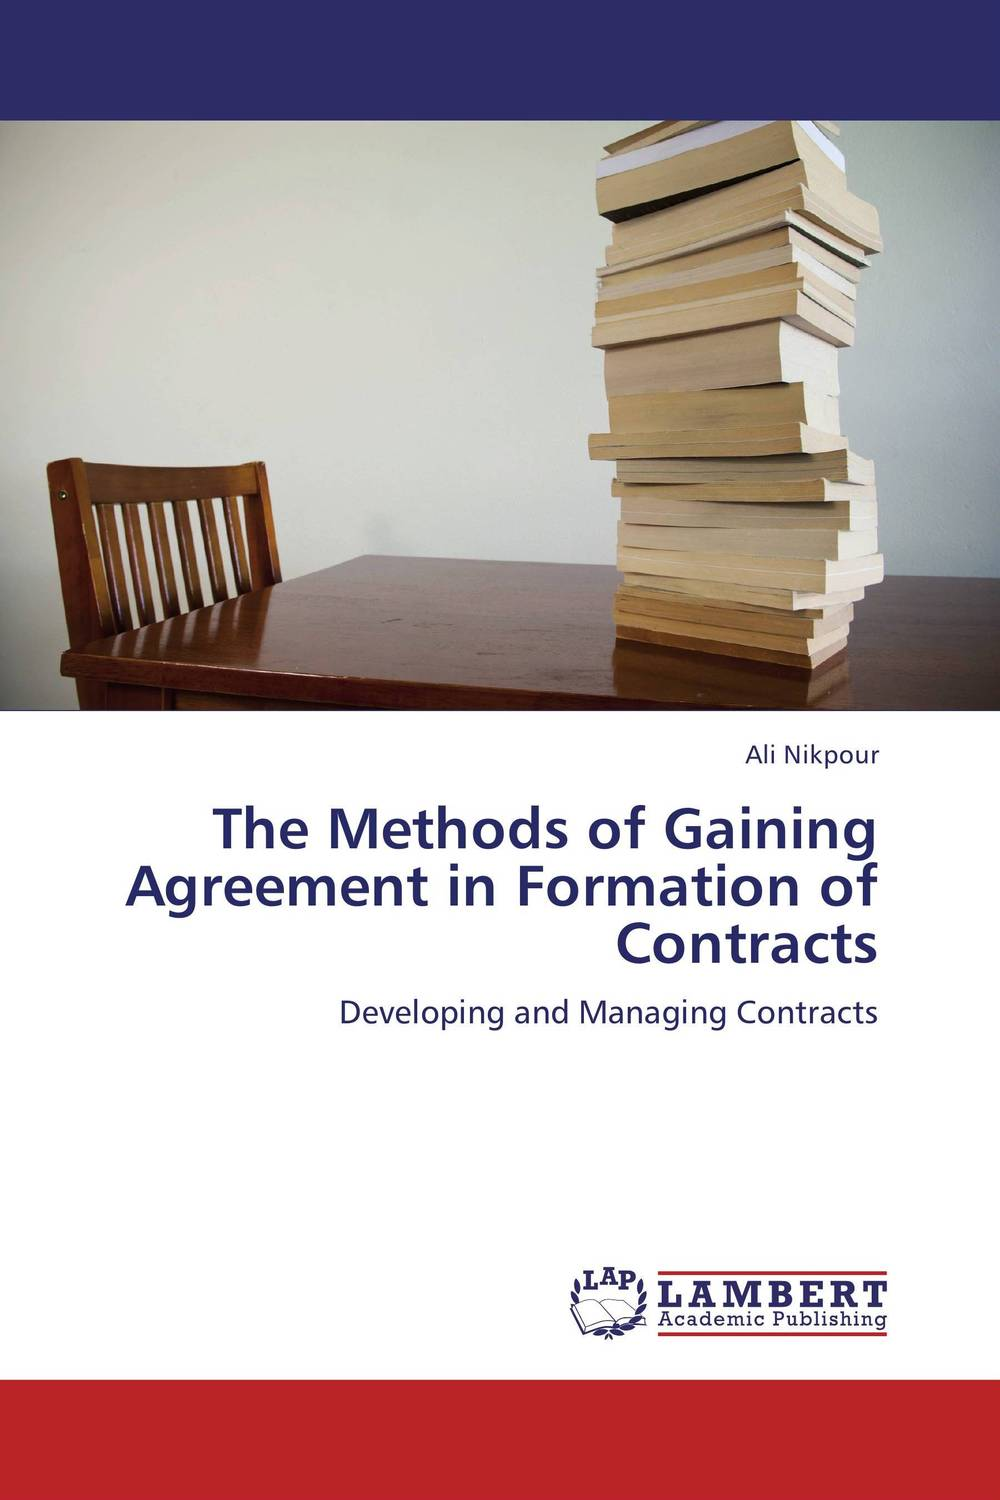 The Methods of Gaining Agreement in Formation of Contracts corporate formation – a primer for legal assistants 1997 supplement